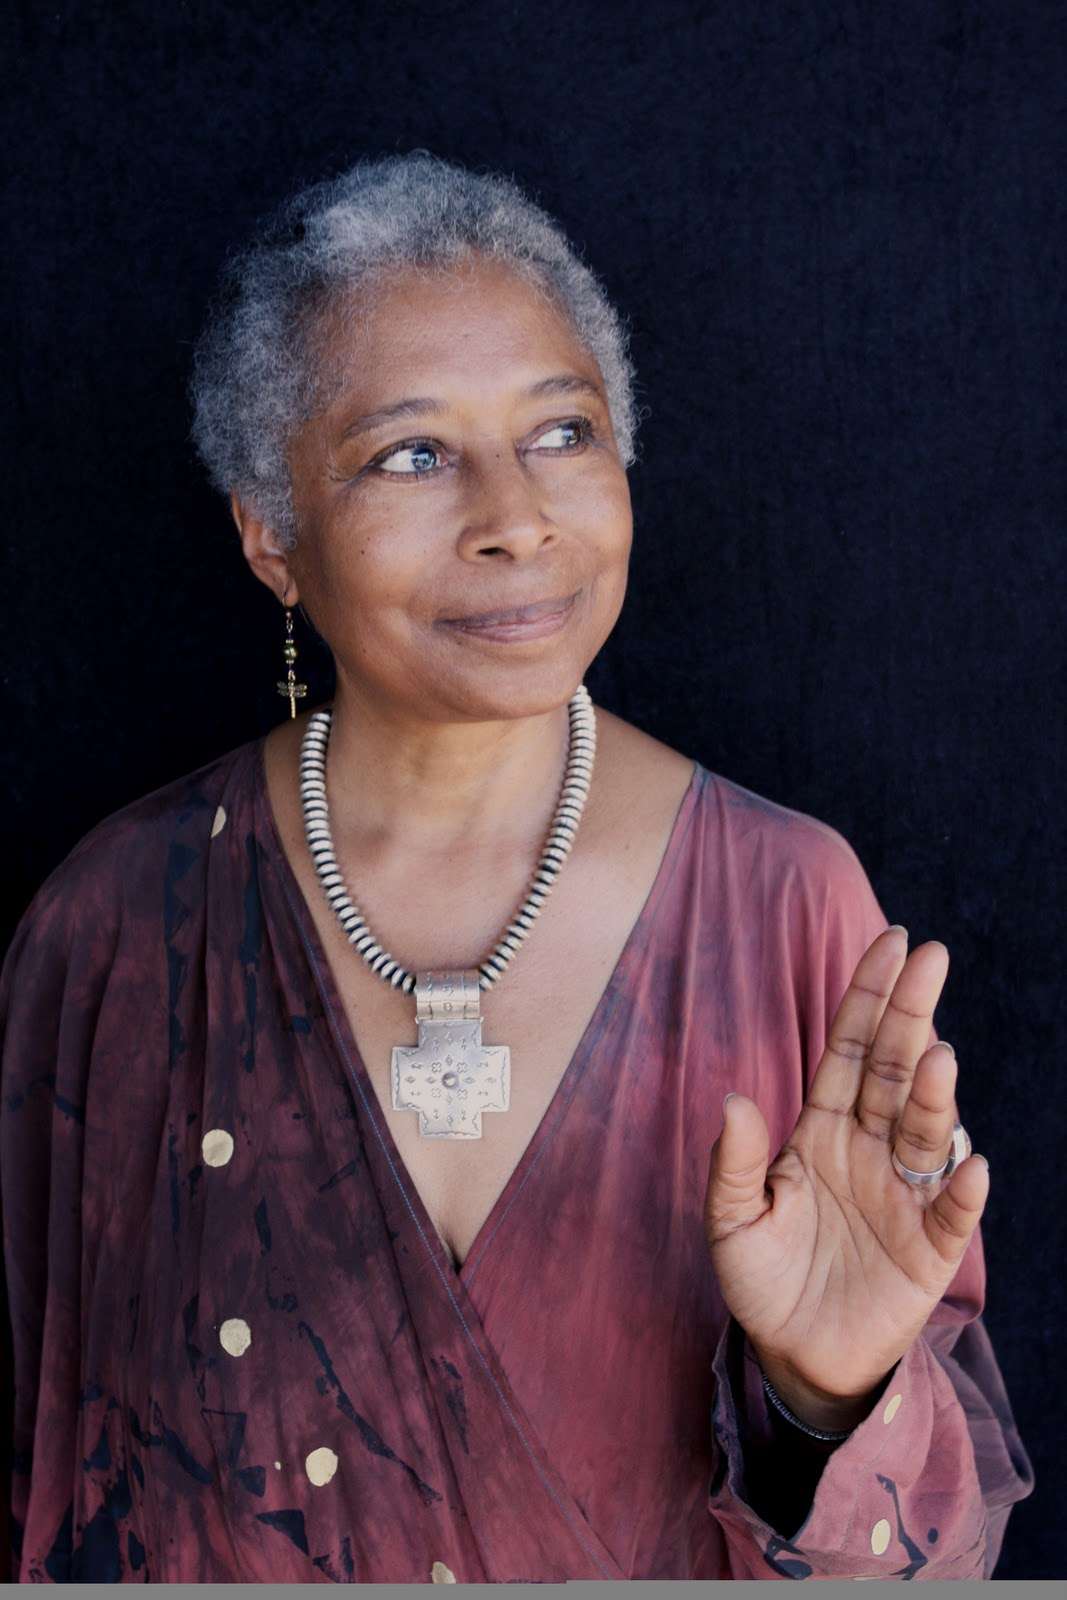 alice walker s biography Get information, facts, and pictures about alice walker at encyclopediacom make research projects and school reports about alice walker easy with credible articles from our free, online.